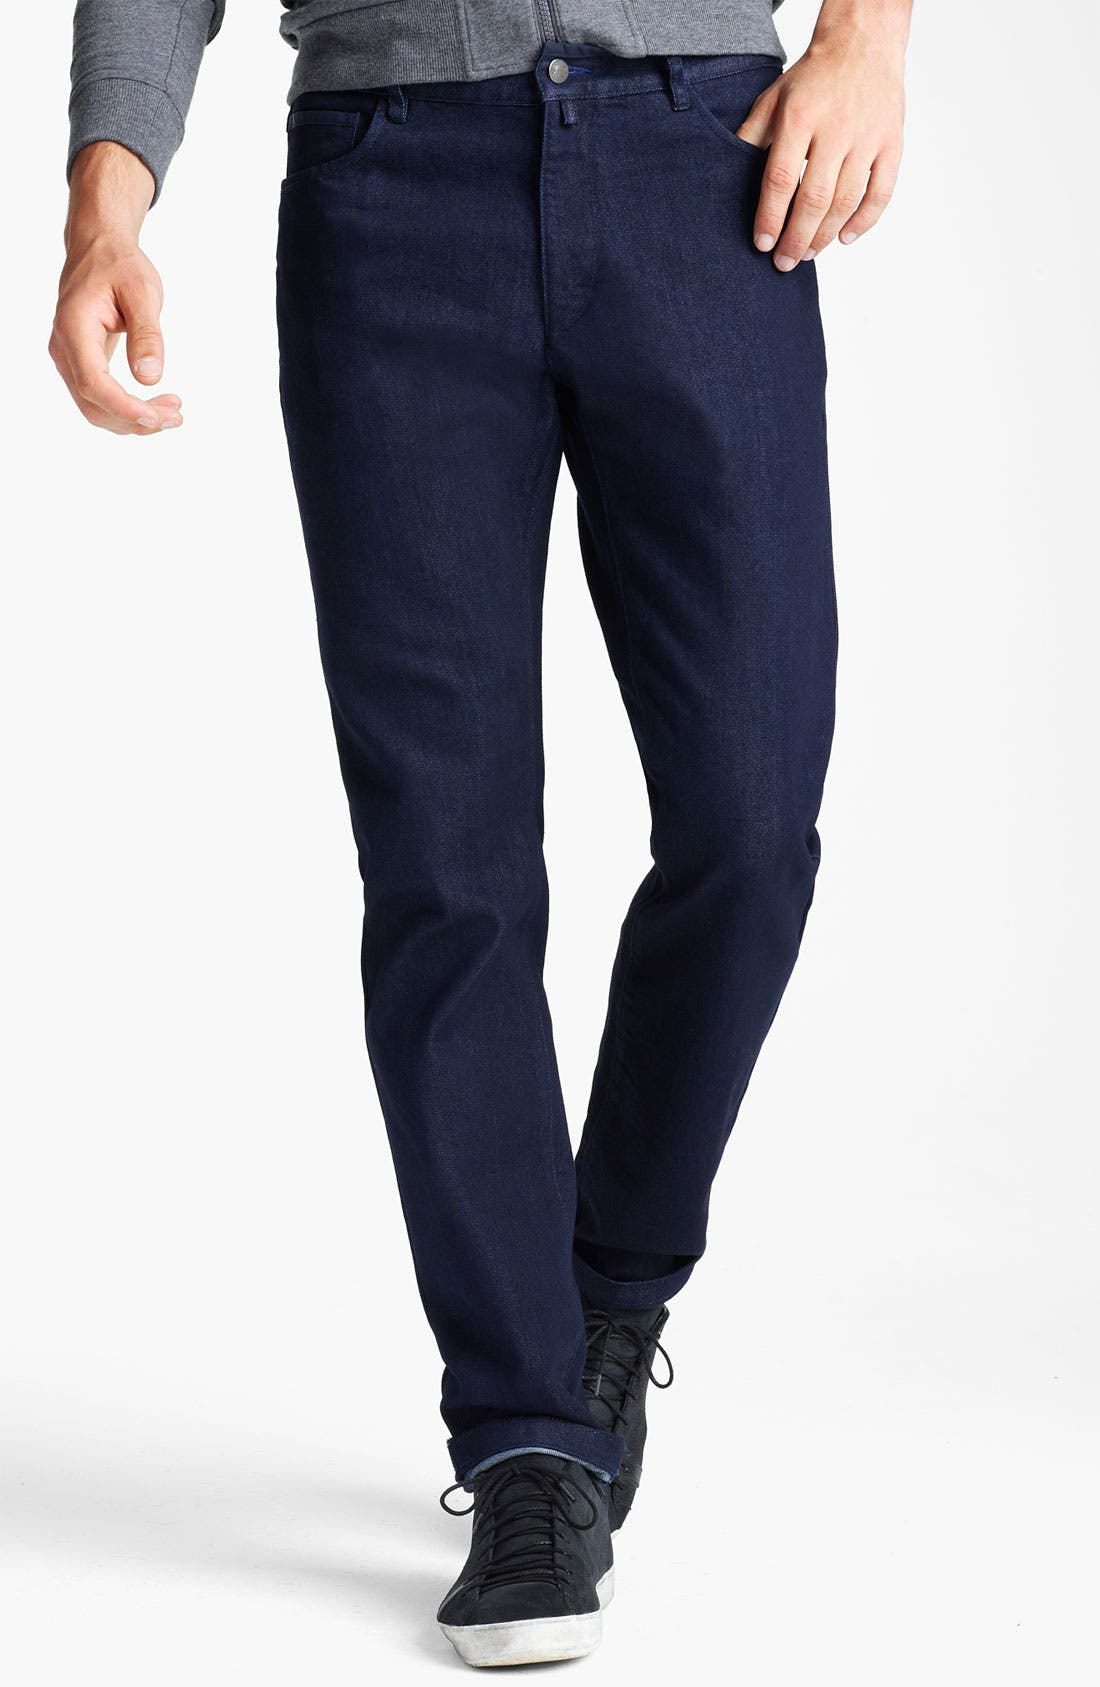 Main Image - Zegna Sport 'Cool Max' Straight Leg Jeans (Dark Blue)